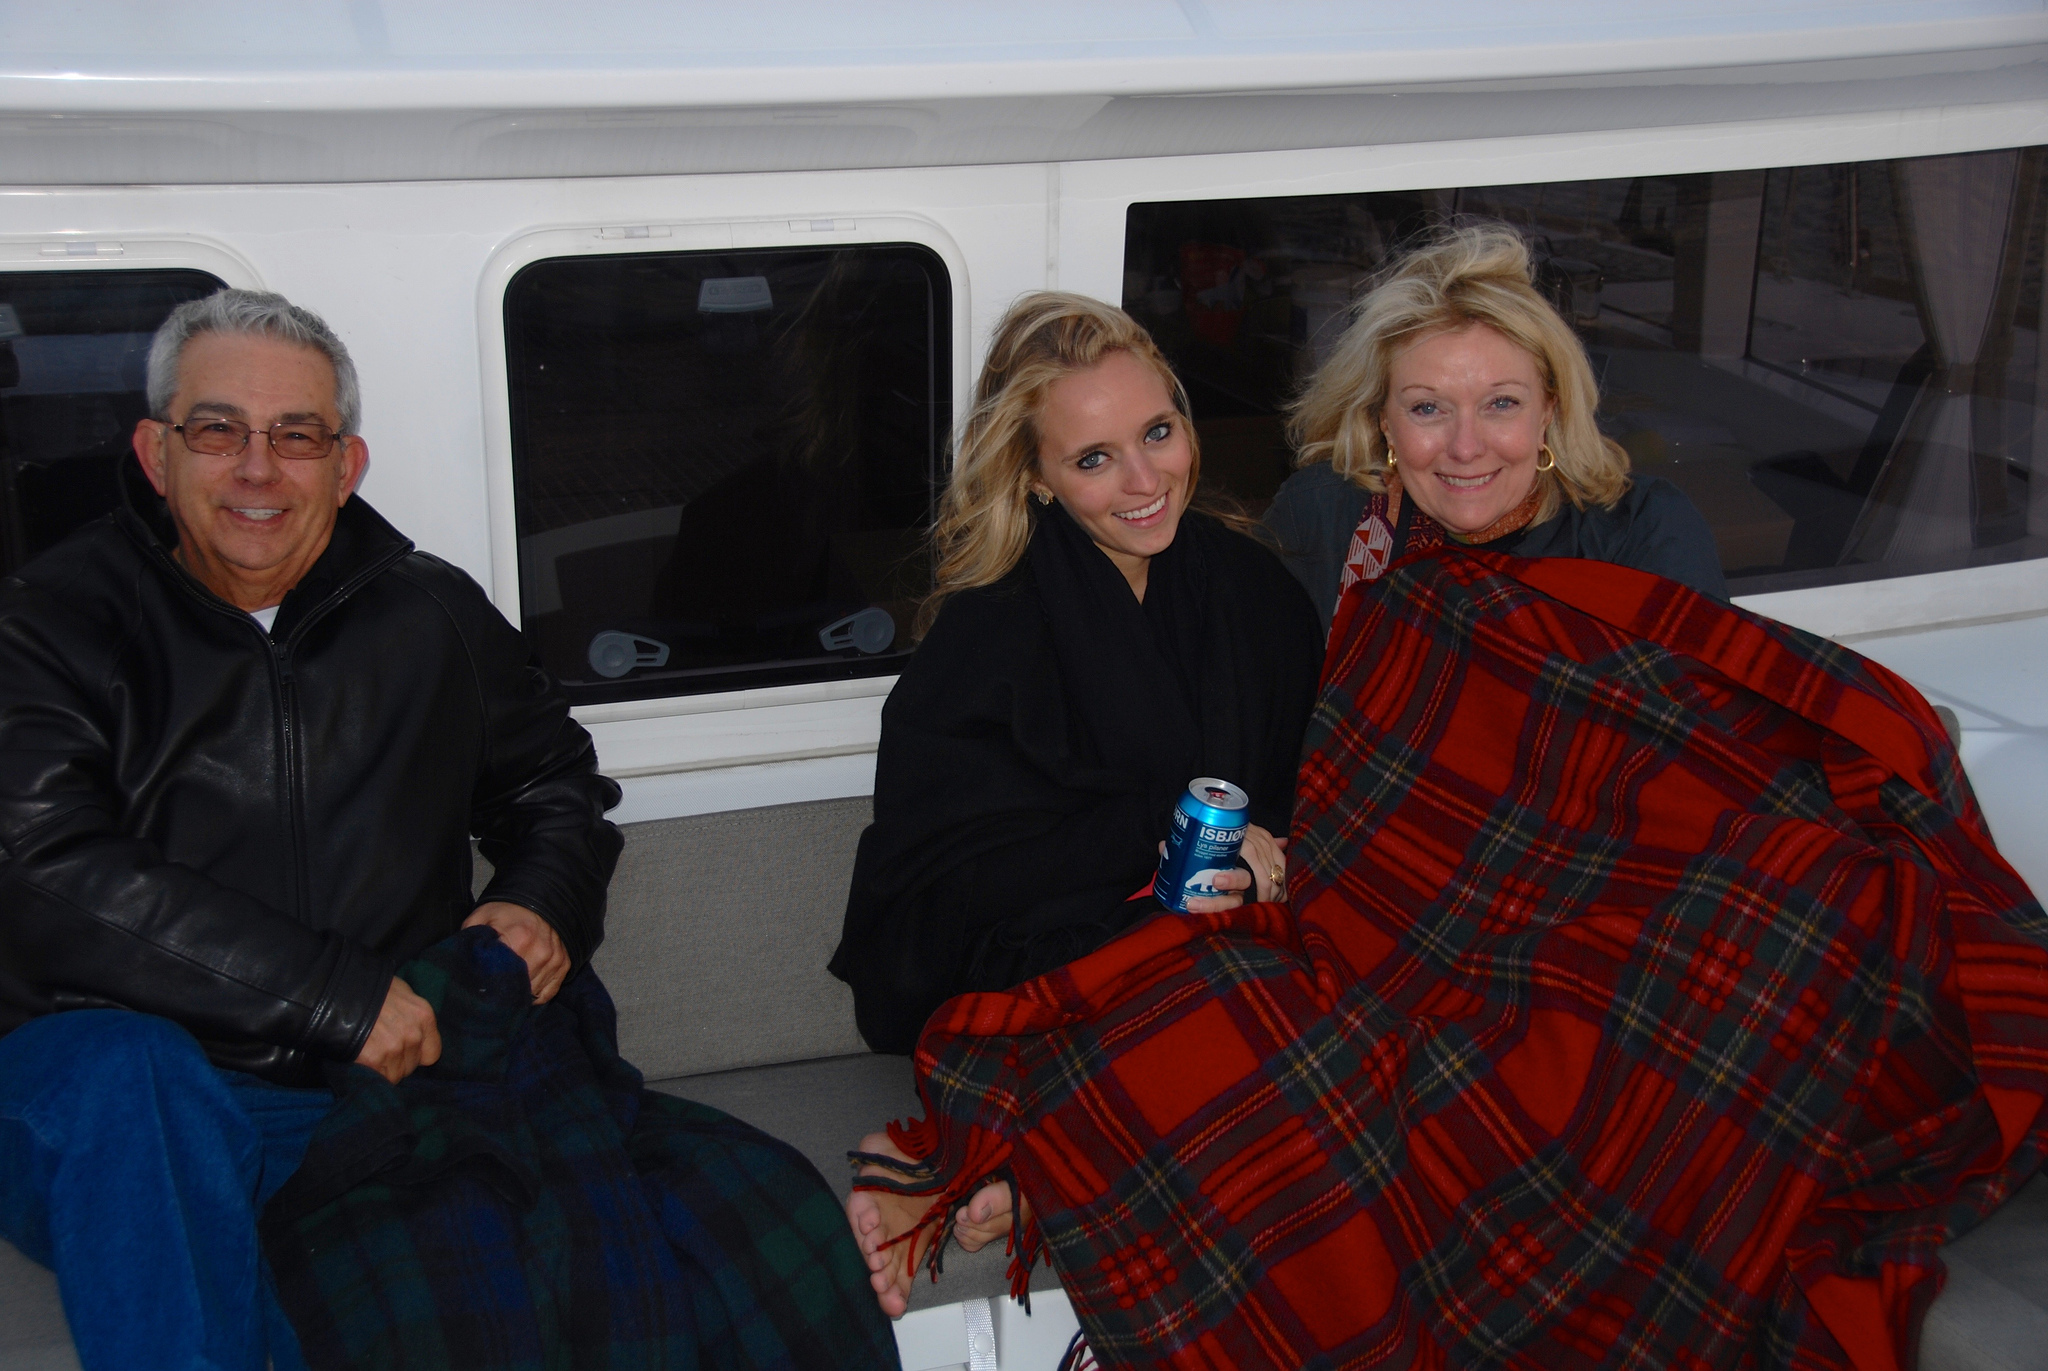 #midnightsun | #Arctic Princess |#Tromso | Guests from Texas